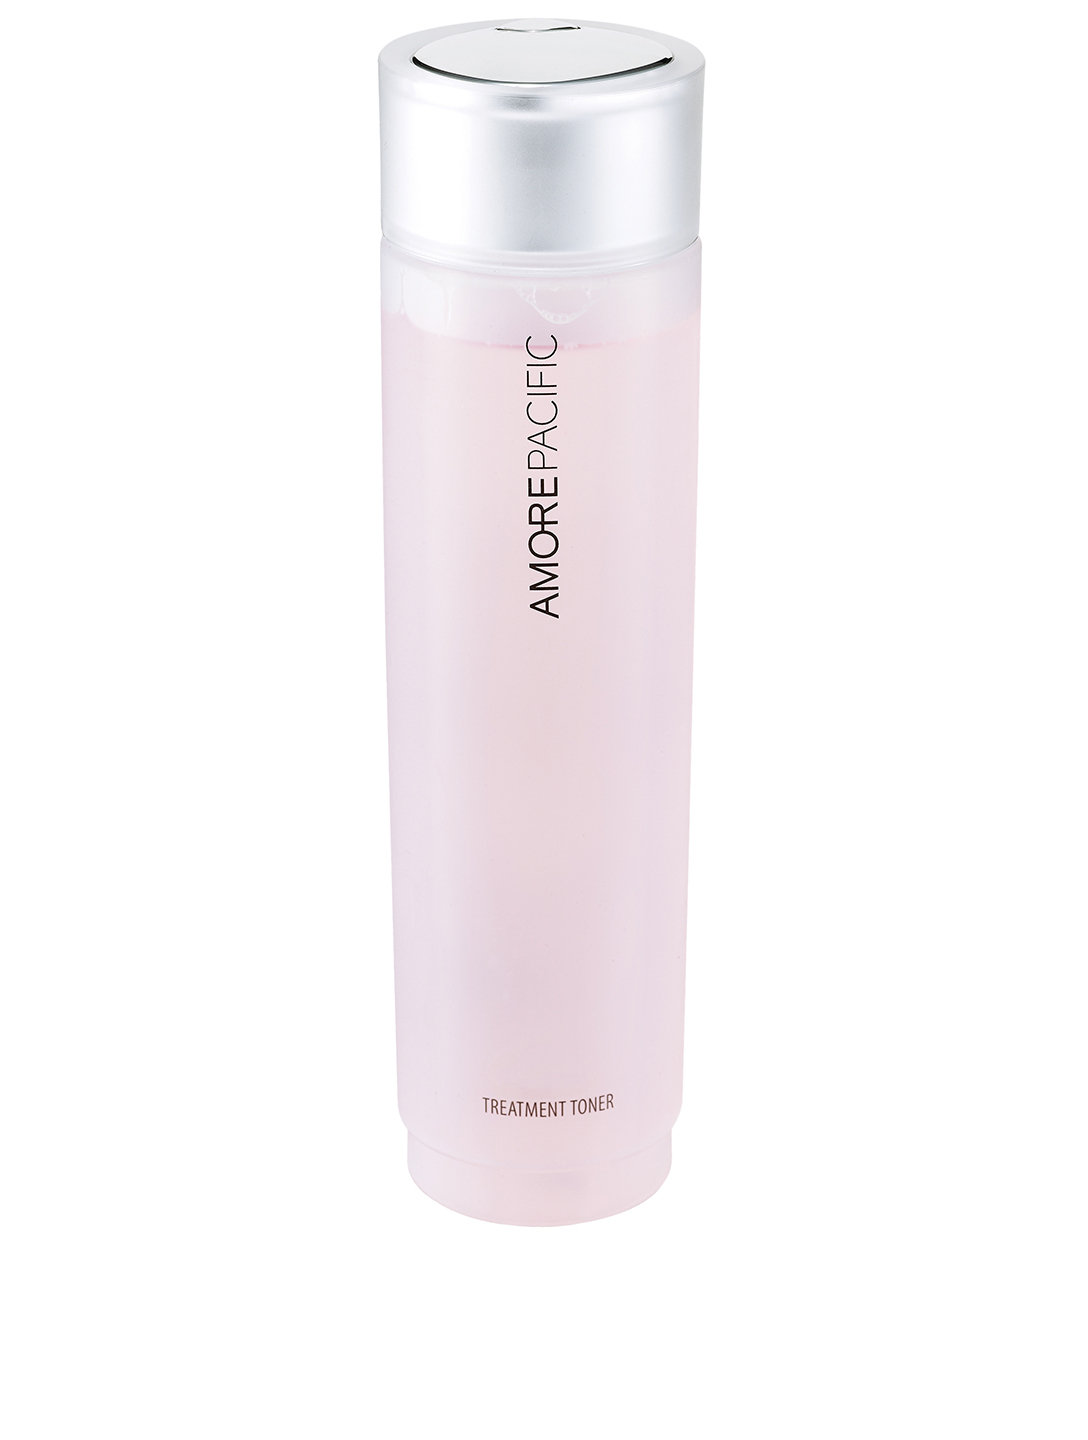 AMOREPACIFIC Treatment Toner Beauty